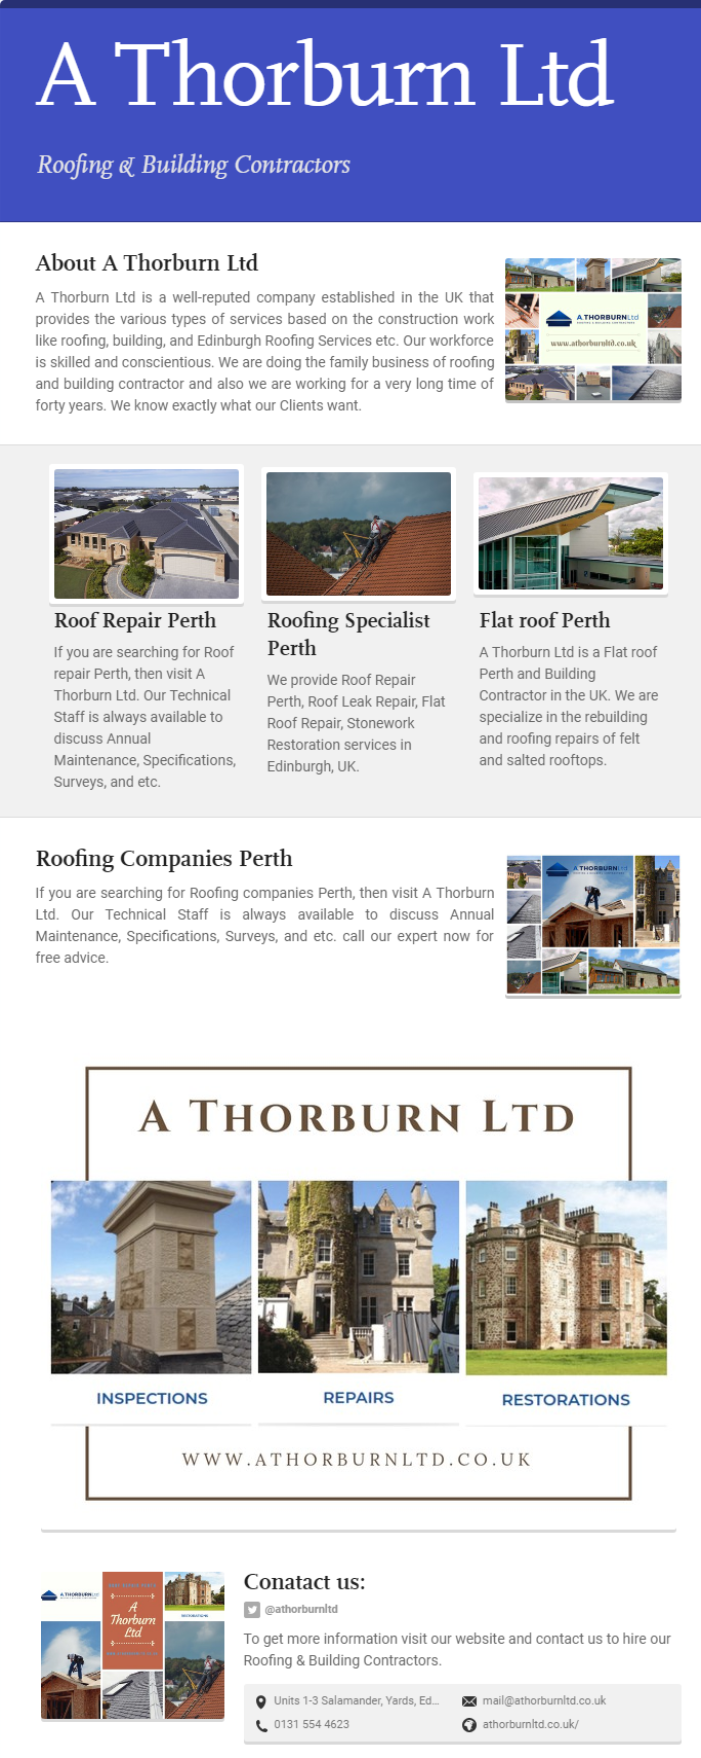 A Thorburn Ltd Is A Flat Roof Perth And Building Contractor In The Uk We Are Specialize In The Rebuilding And Roofing Repairs Of Fel Flat Roof Repair Flat Roof